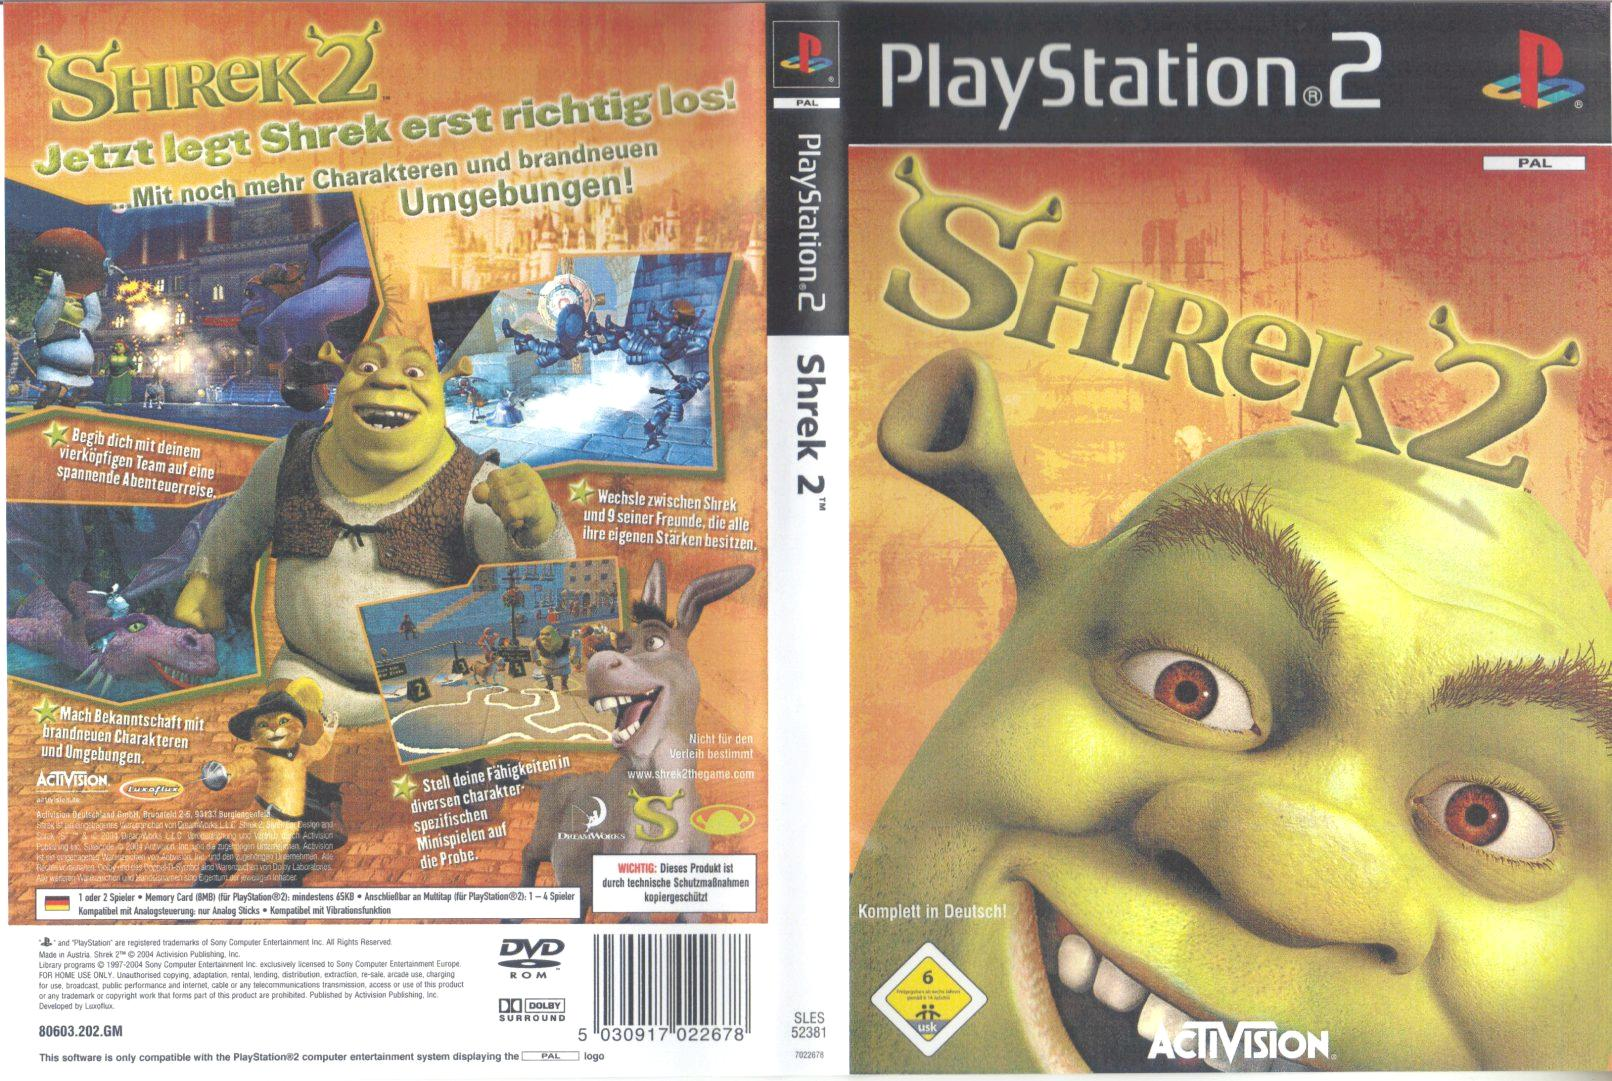 shrek 2 d | Playstation 2 Covers | Cover Century | Over 500.000 Album Art  covers for free